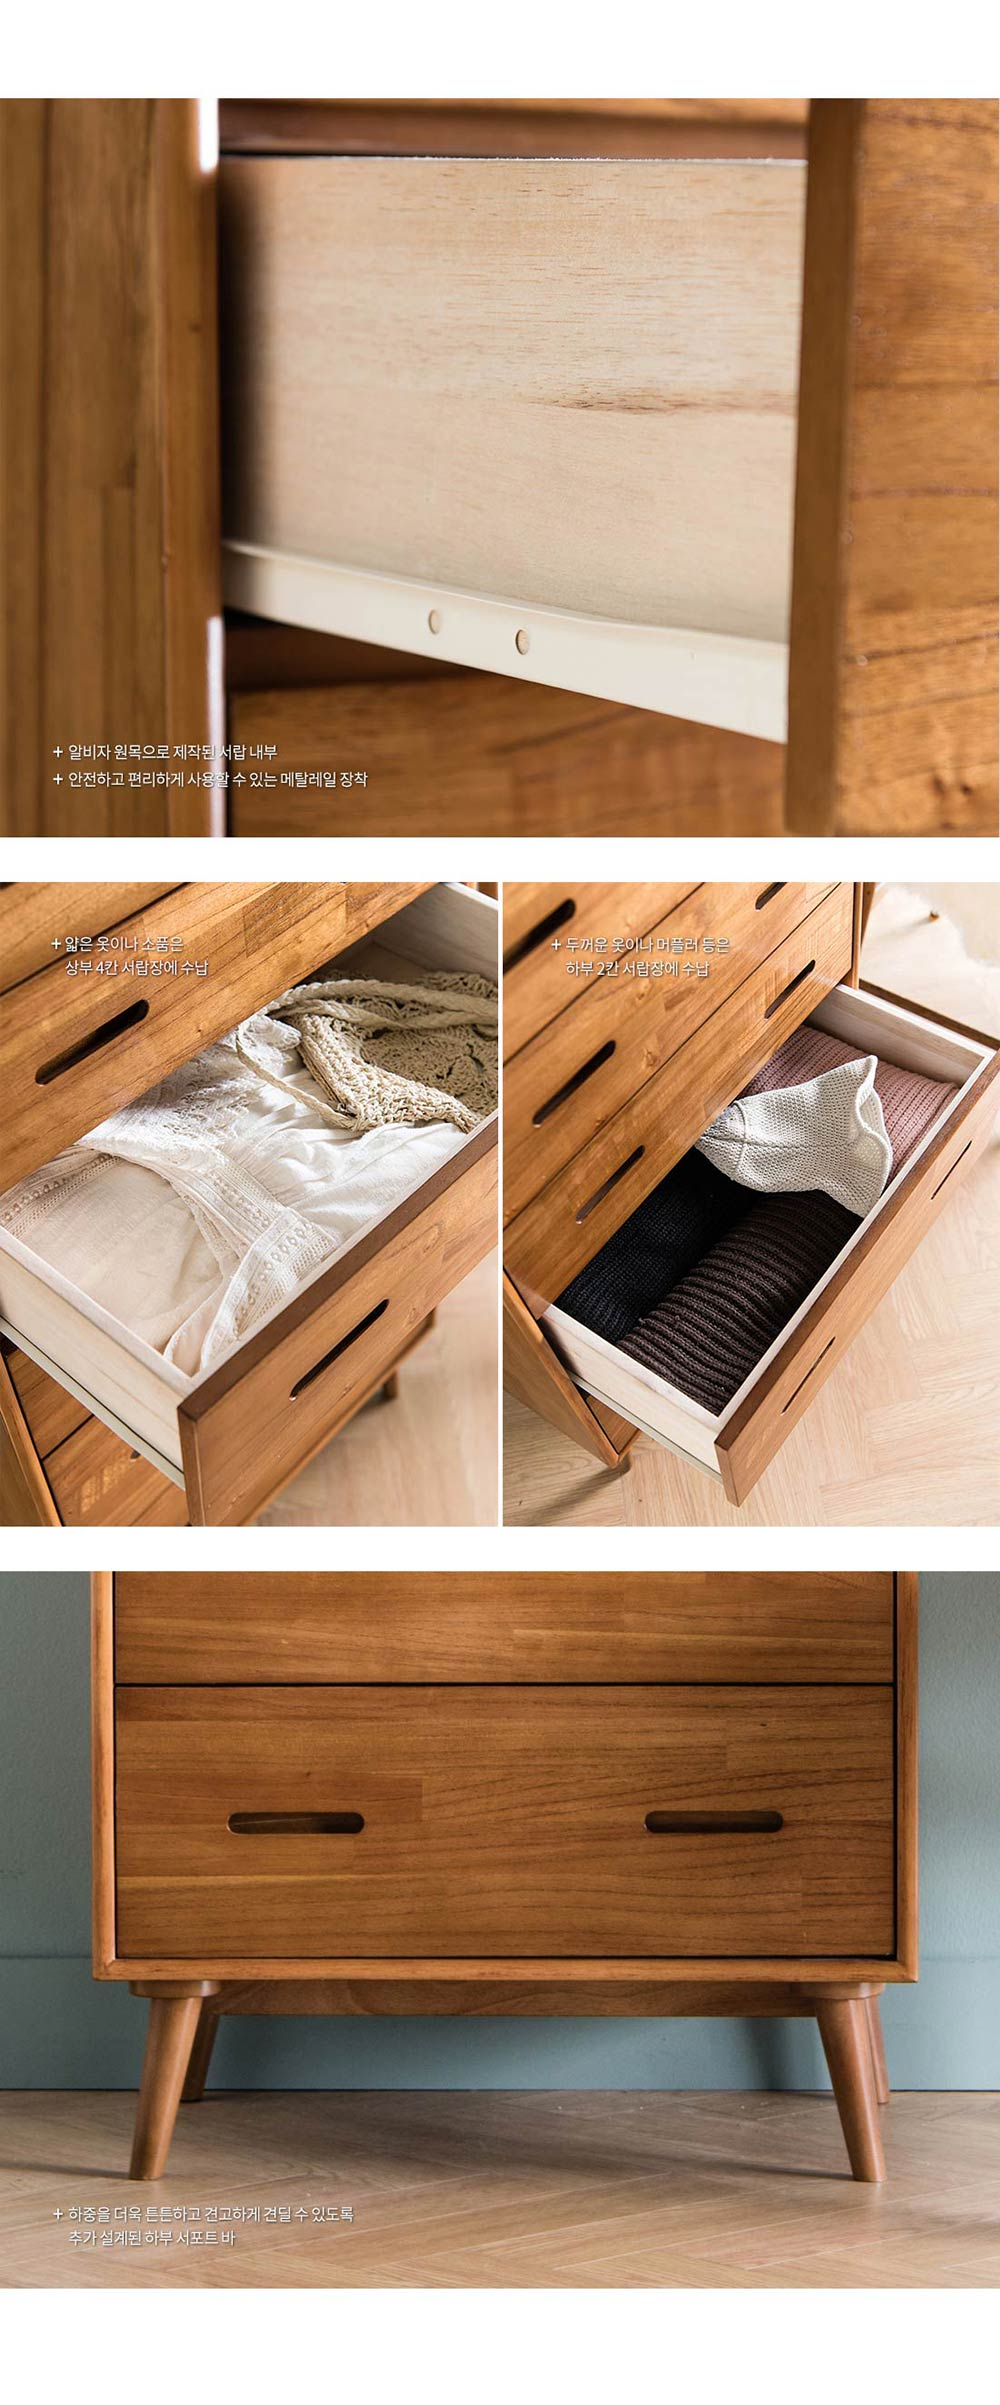 New_Retro_6_Drawers_Storage_Chest_Singapore_Furniture_Online_Usage_1_by_born_in_colour